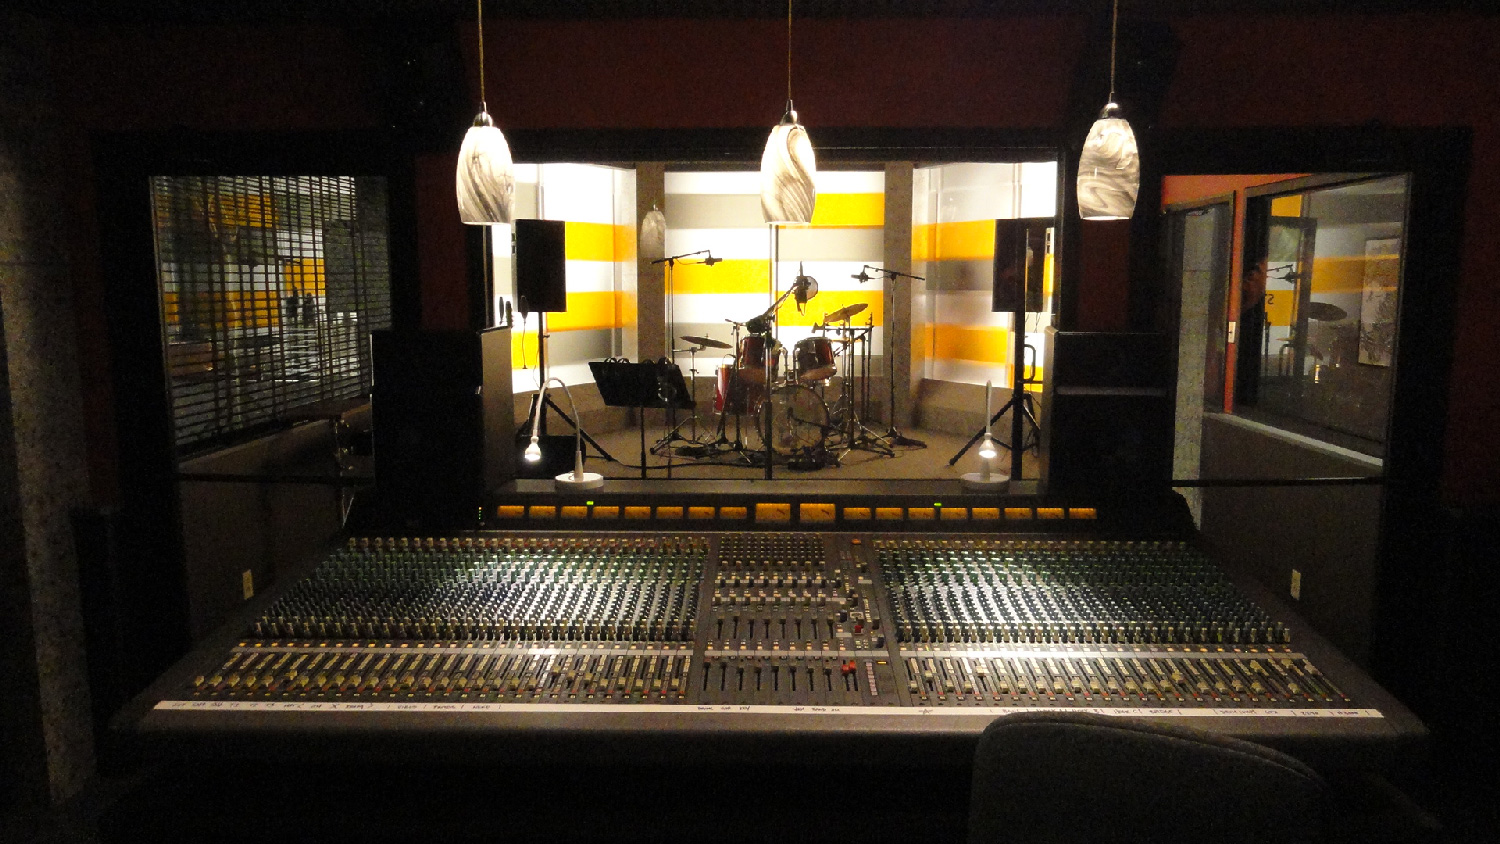 Another view of the Atlanta Records recording studio set.